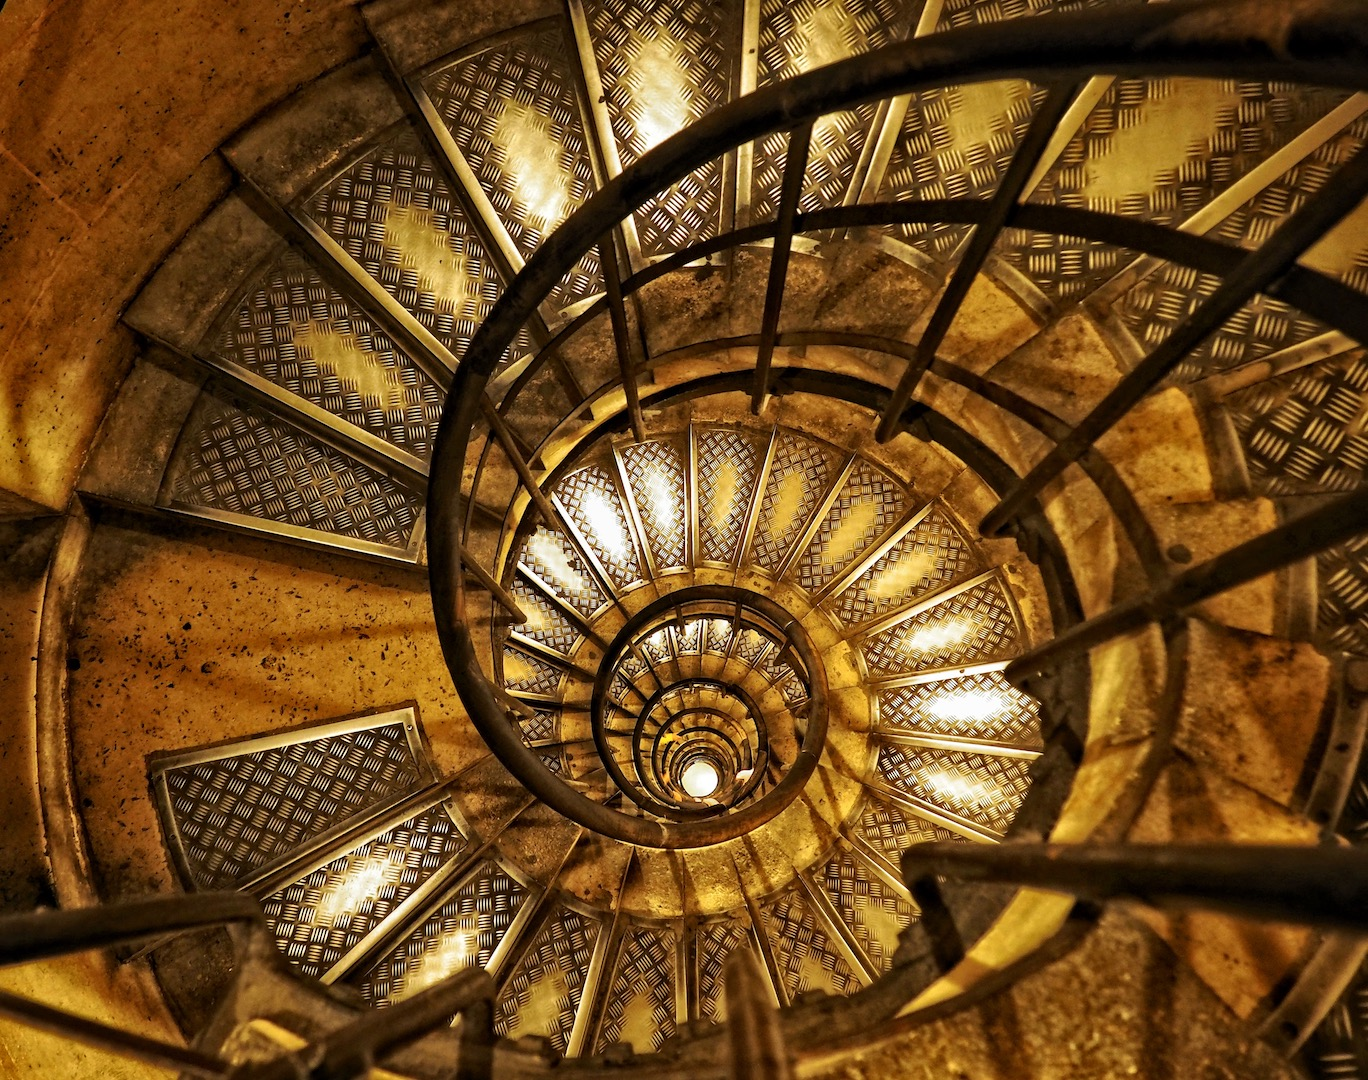 Spiral Stairwell of Arc de Triomphe, Paris - Digital (Artificial Light) - Name Withheld Per Request